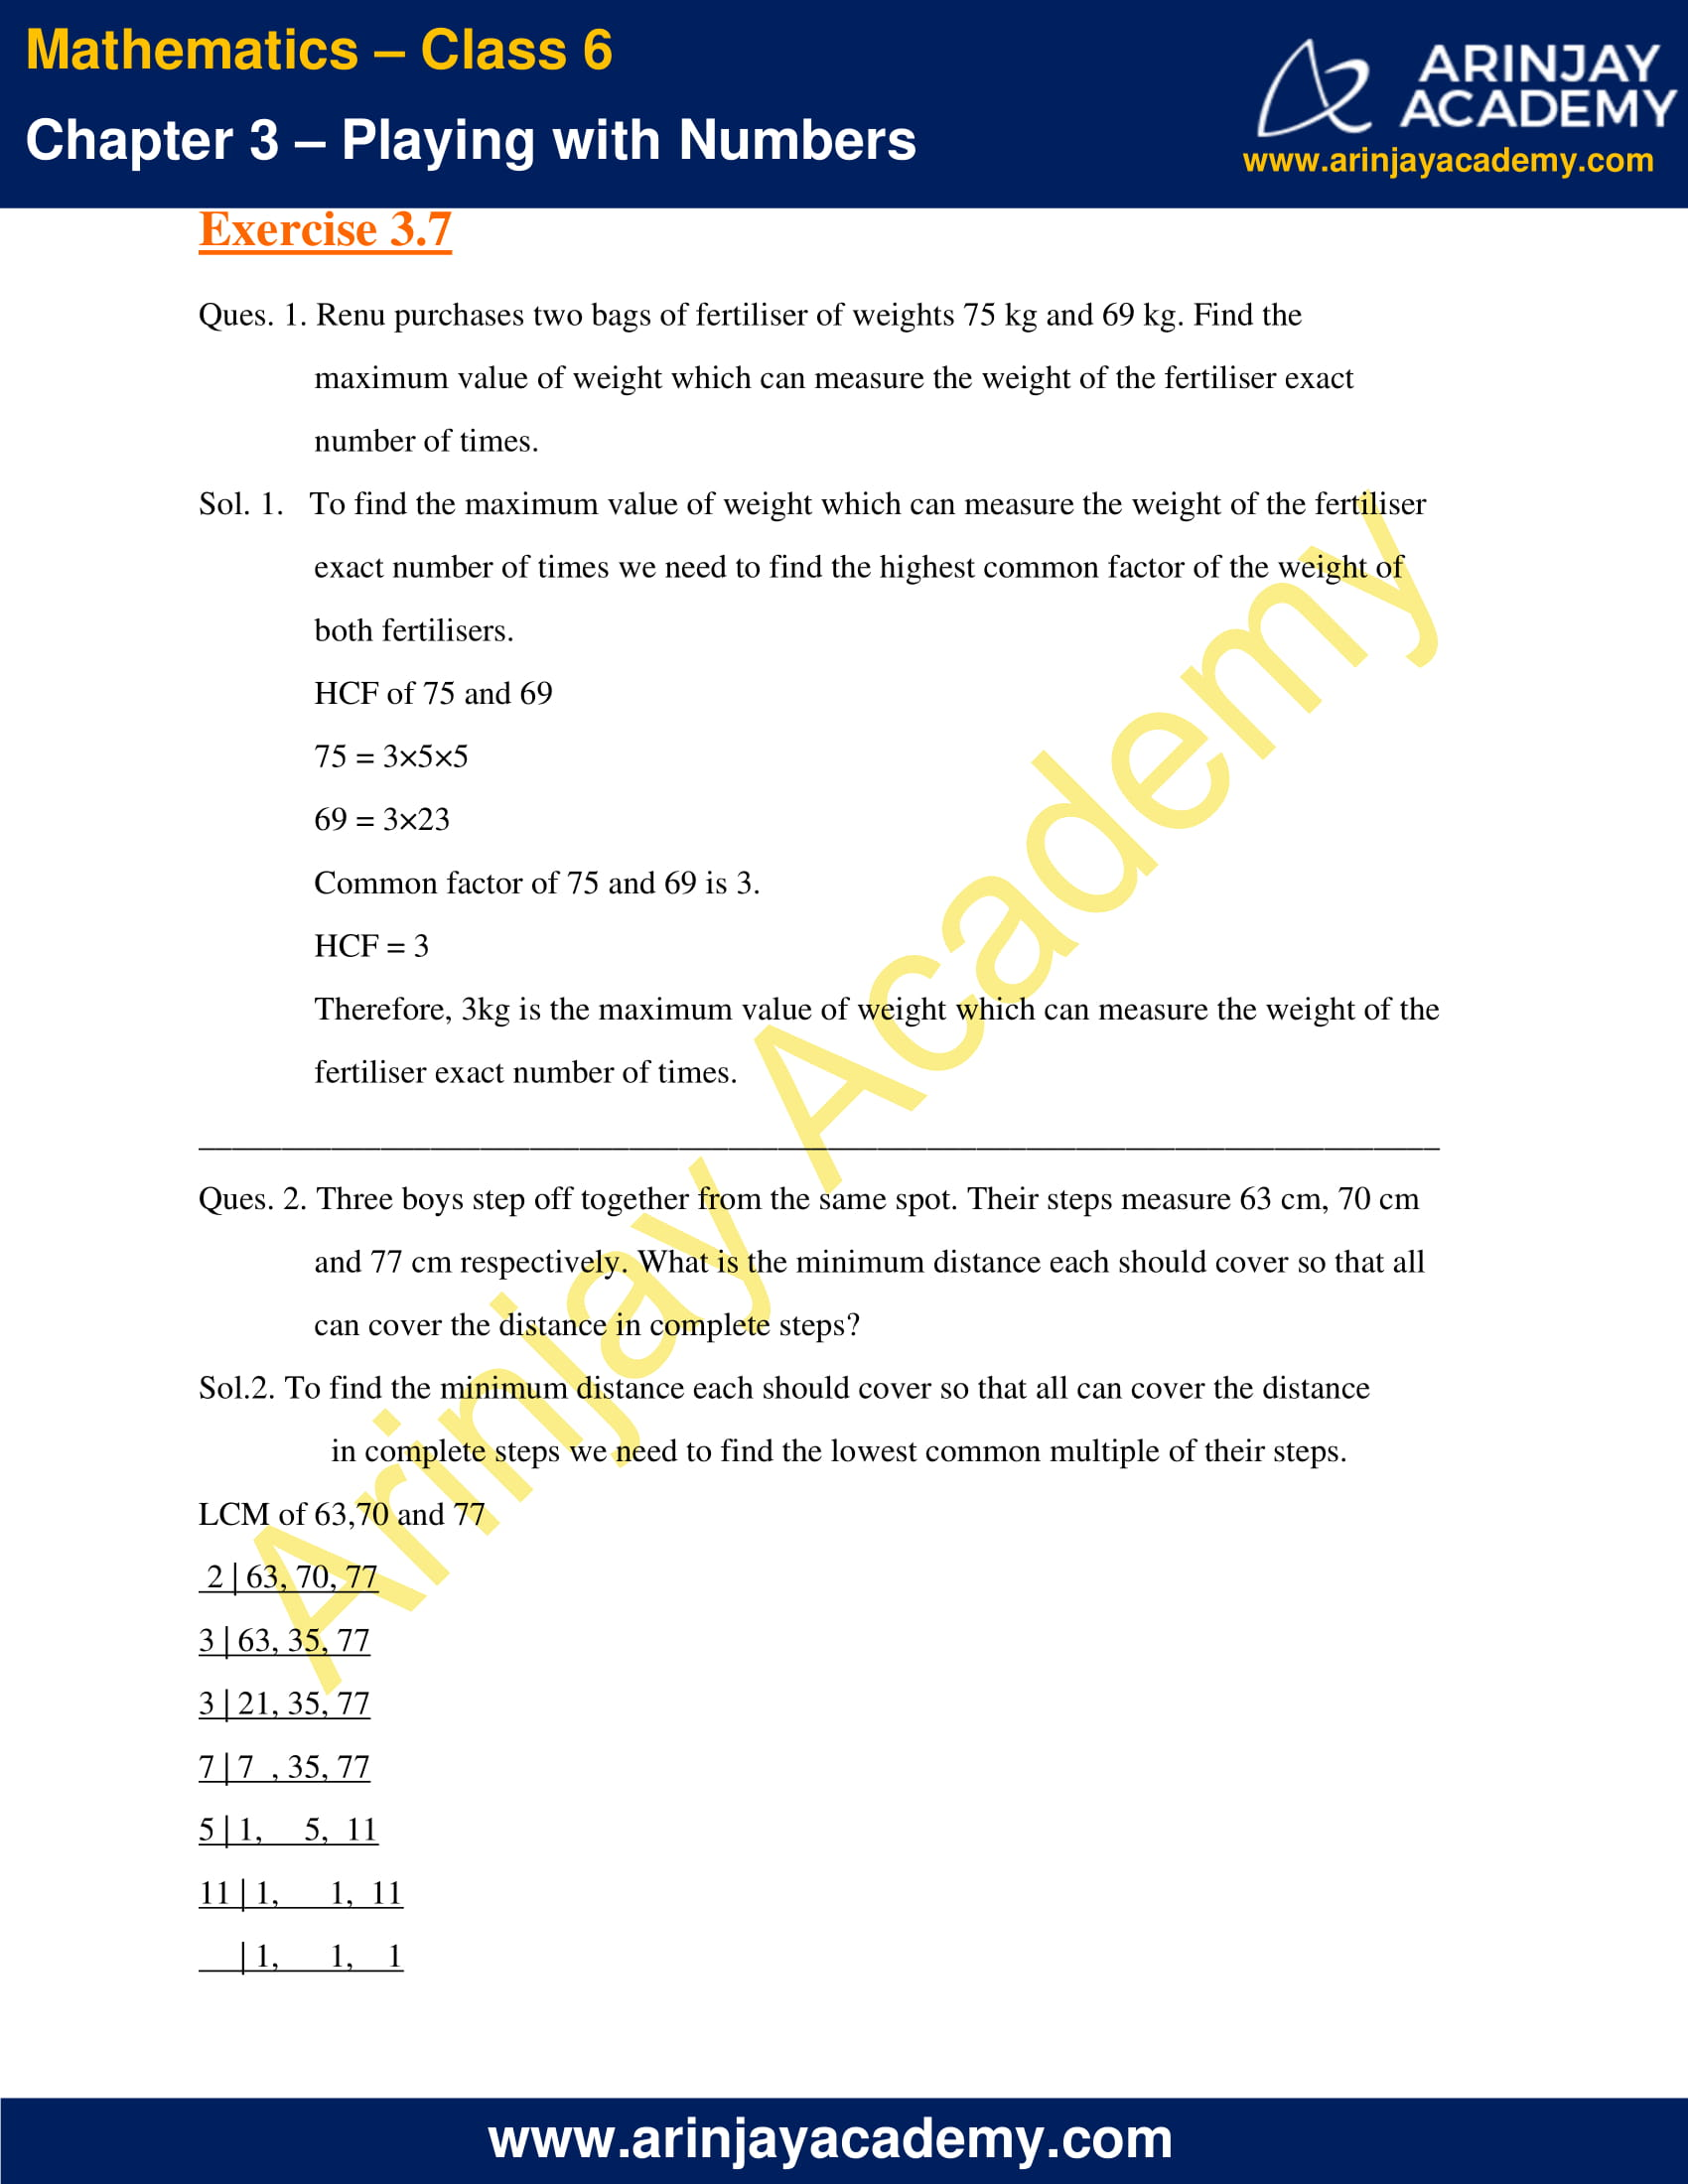 NCERT Solutions for Class 6 Maths Chapter 3 Exercise 3.7 image 1